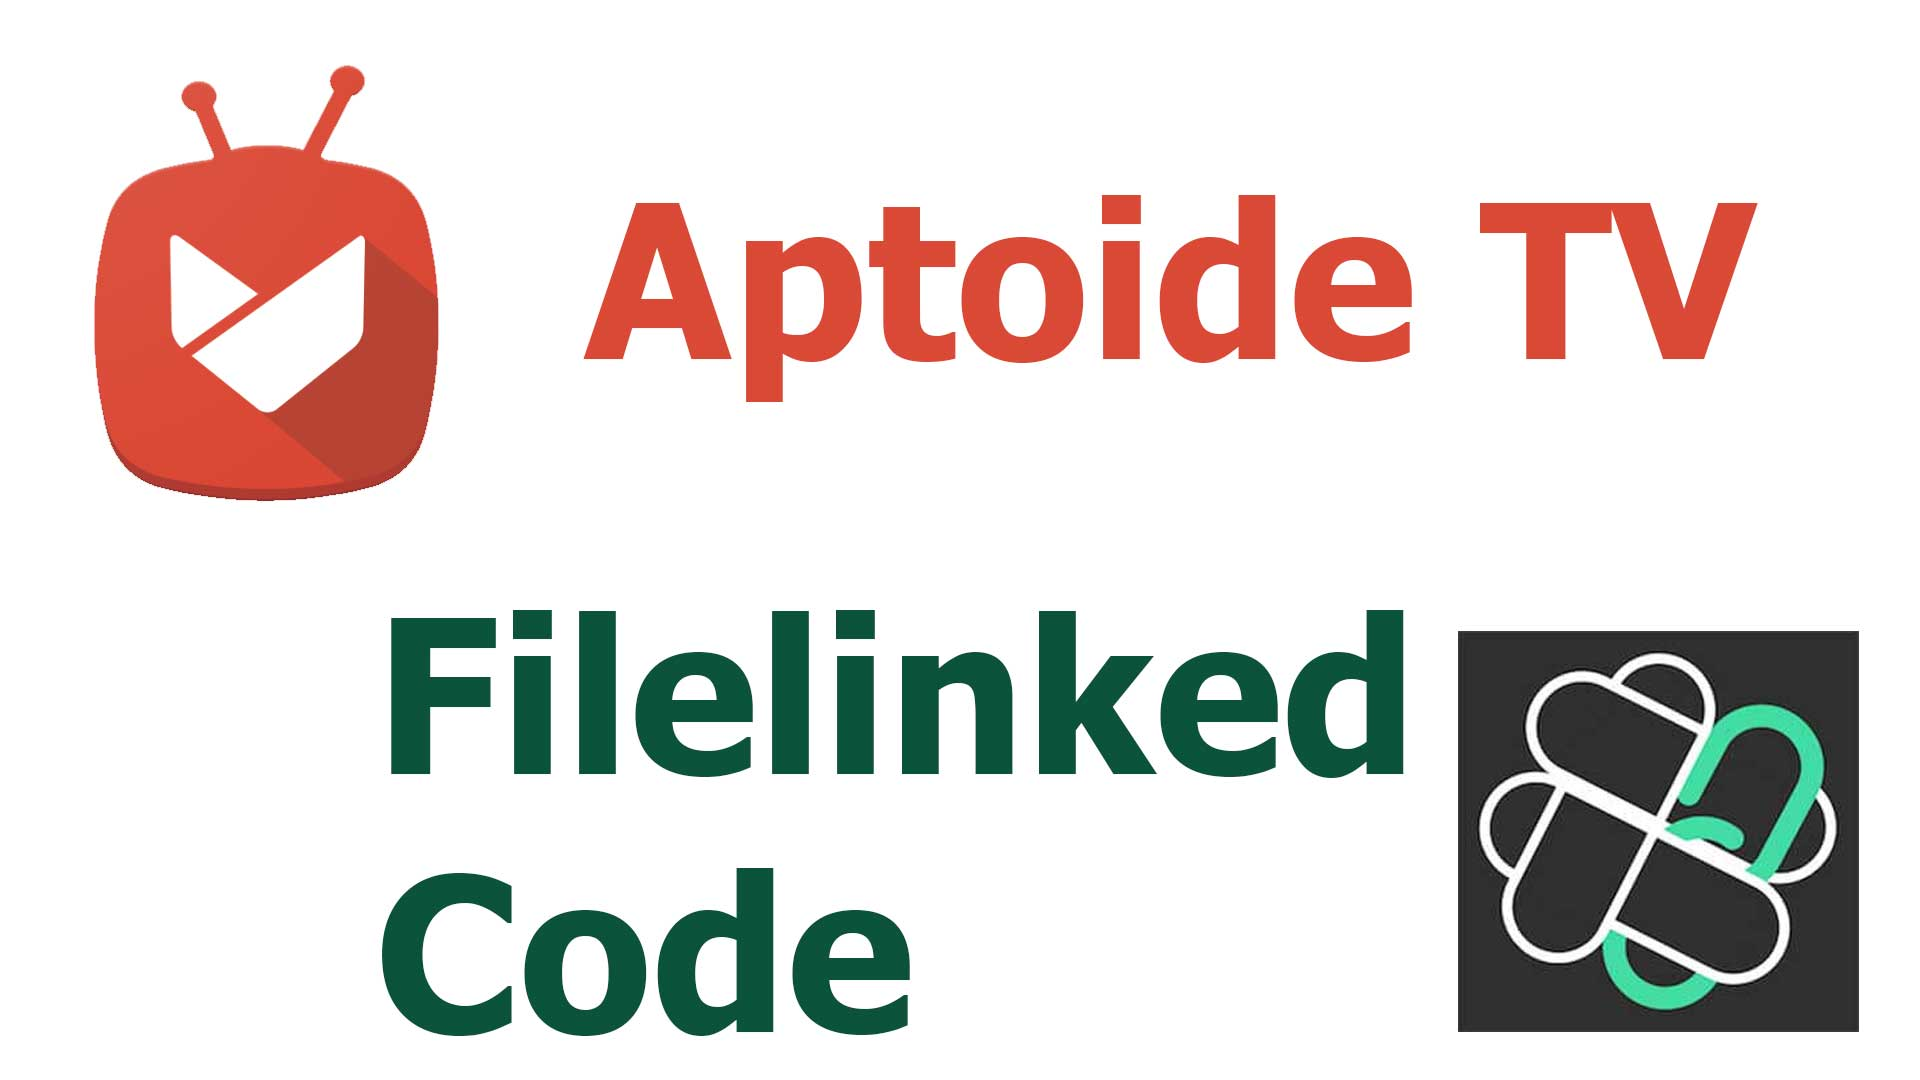 Aptoide TV Filelinked Code